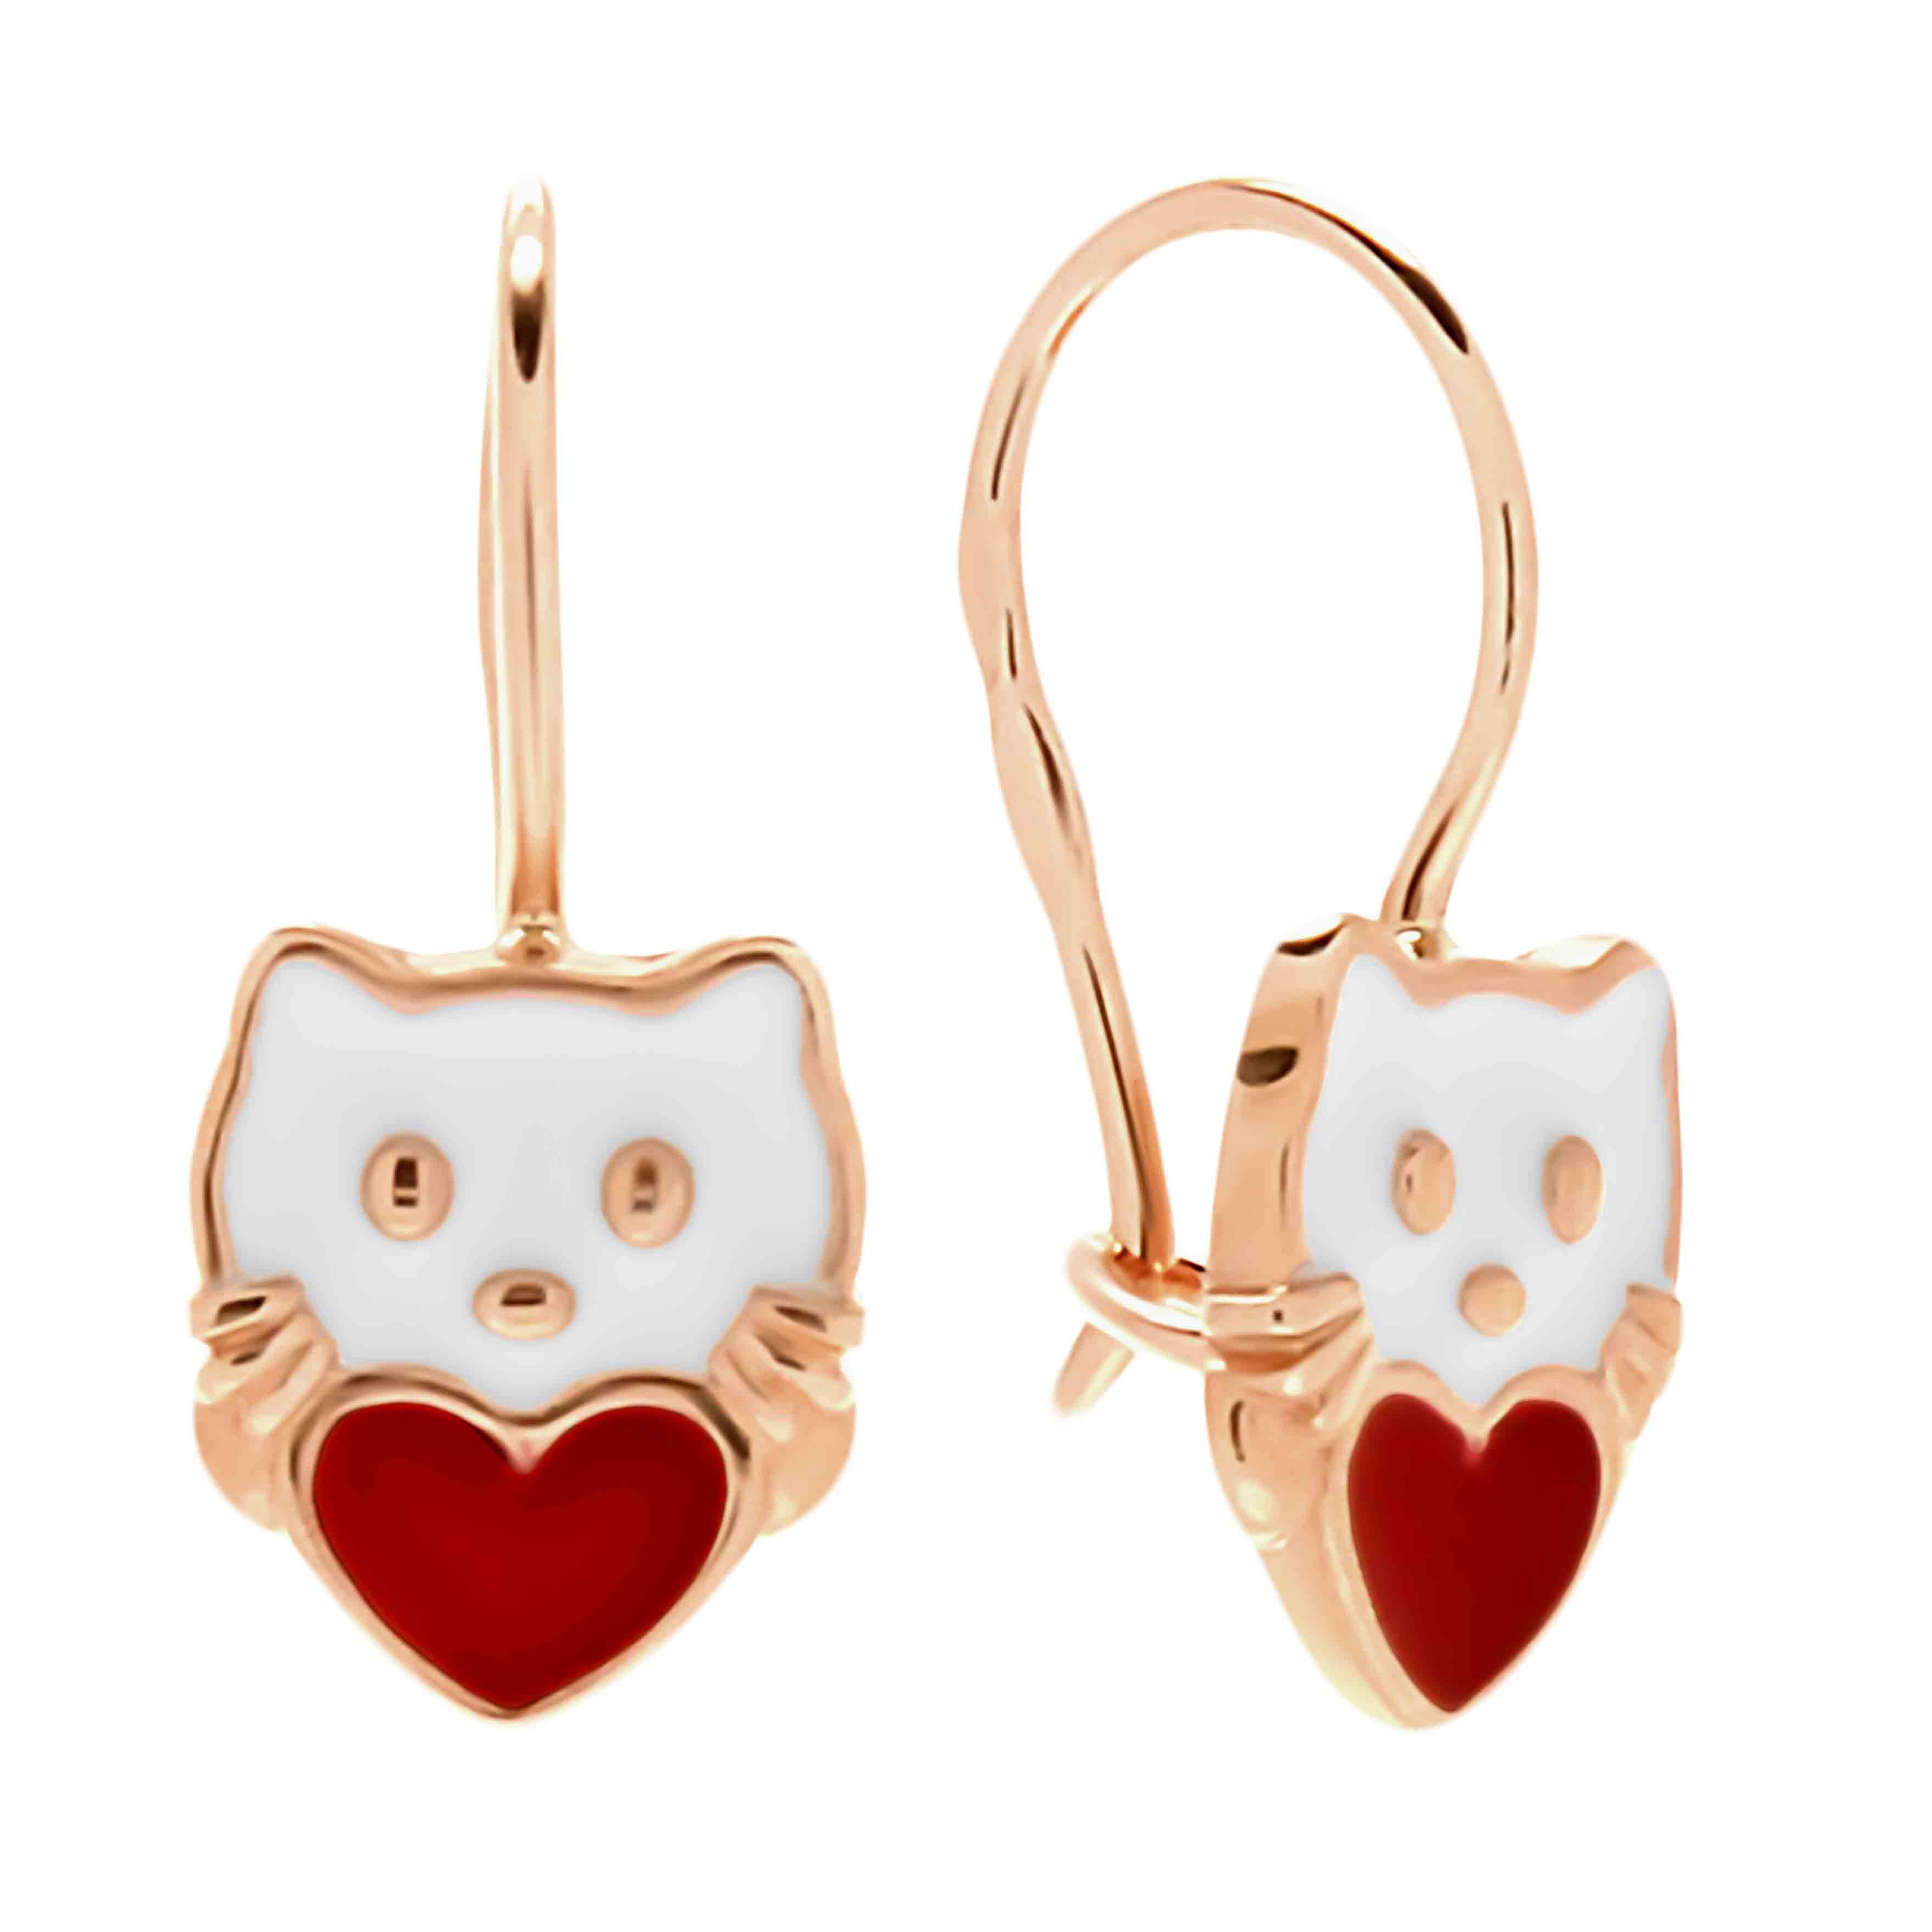 Enamel Kitty Earrings for Kids